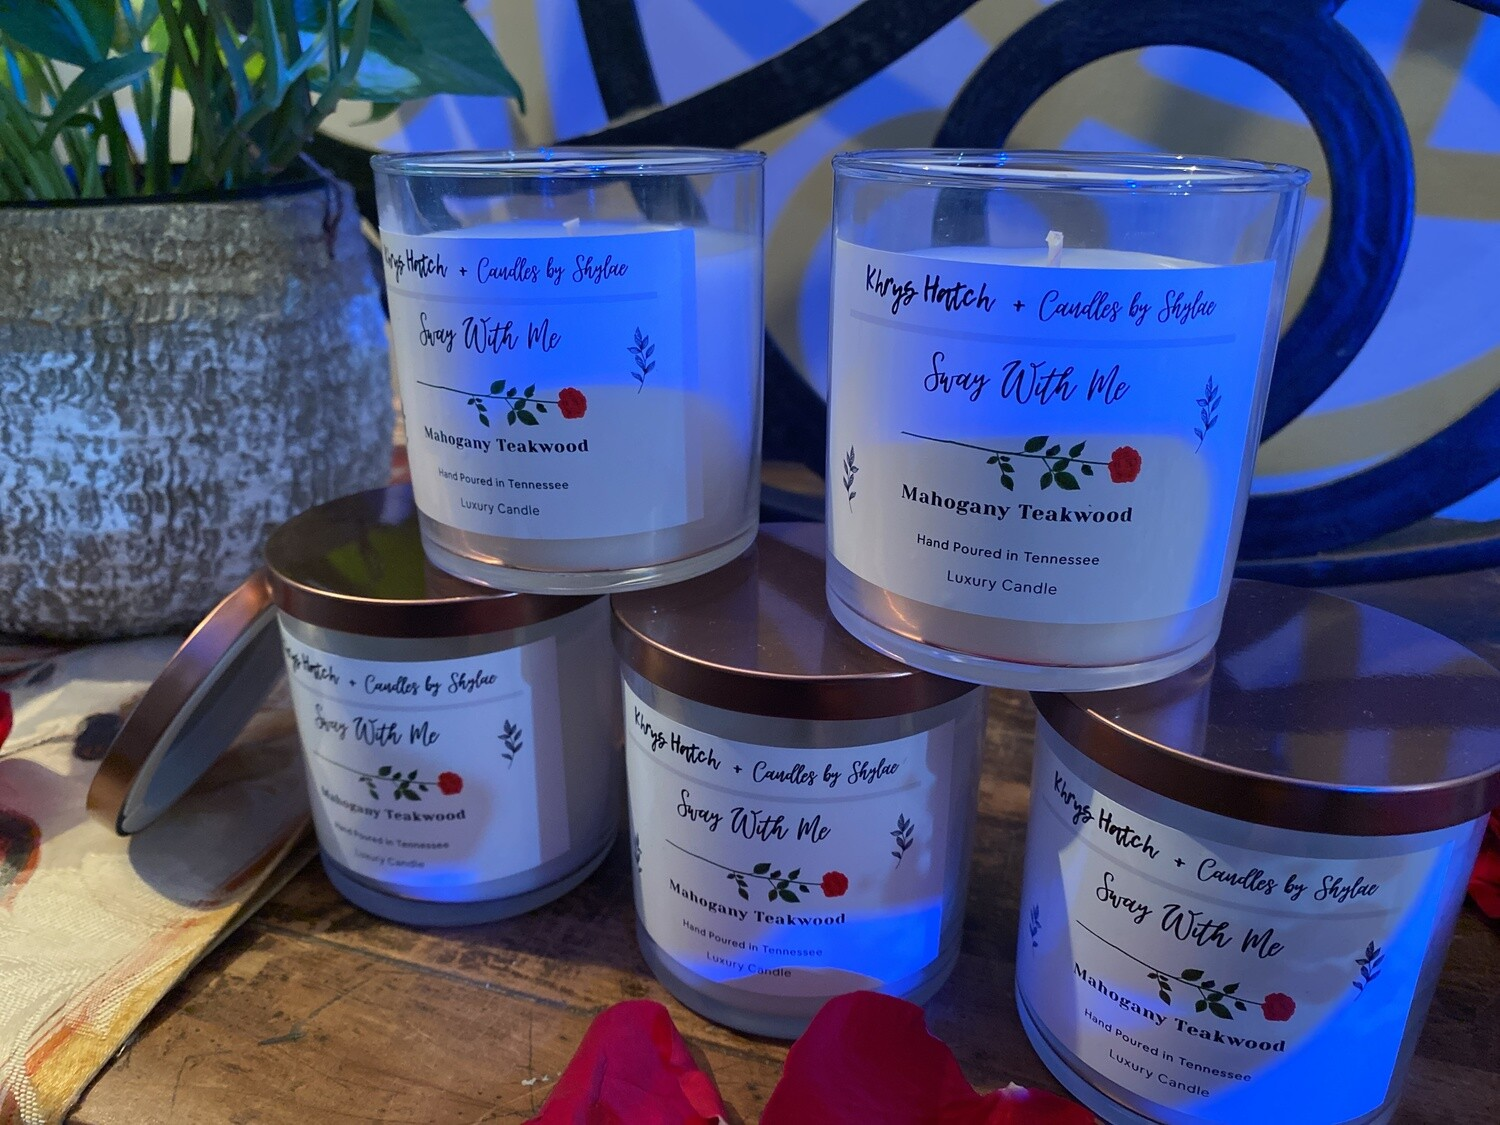 The Sway With Me Candle